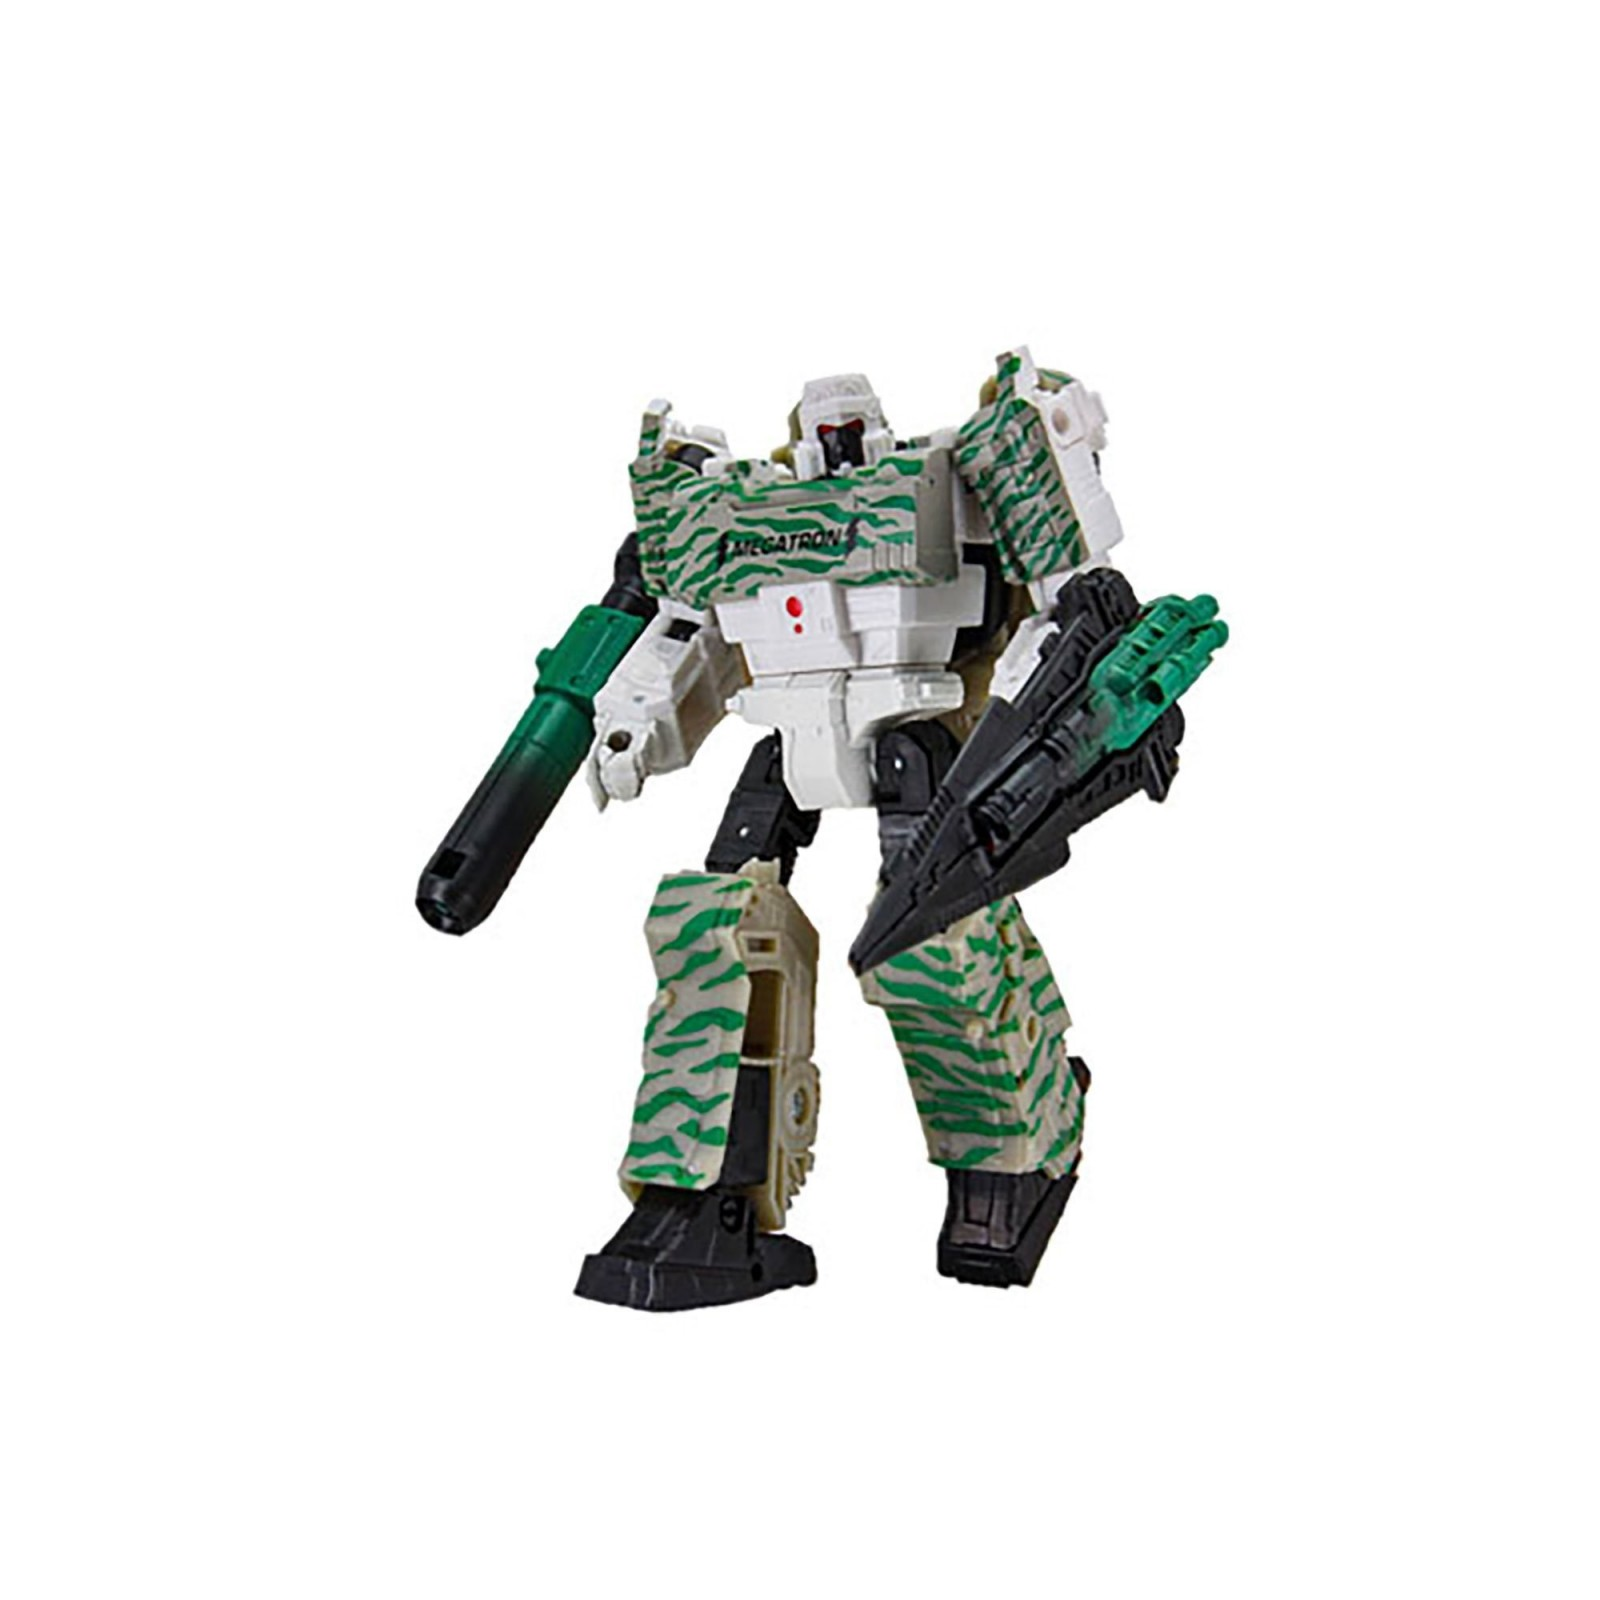 Transformers News: Transformers Generations Selects WFC-GS01 Voyager Combat Megatron Revealed and Available to Order